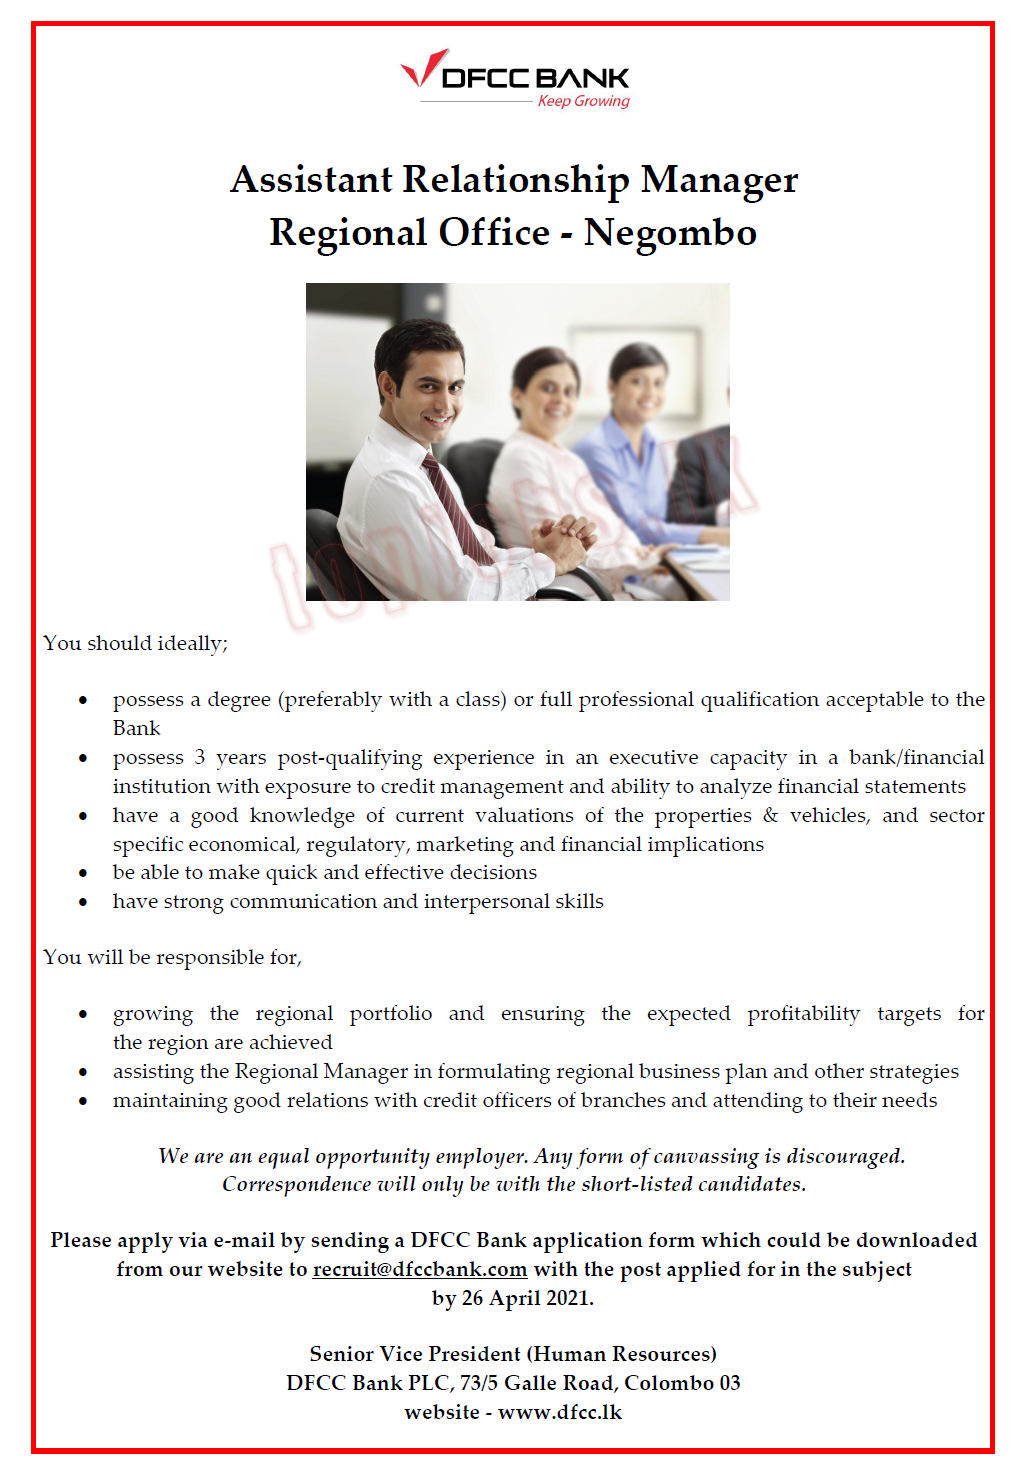 Assistant Relationship Manager - Regional Office - Negombo